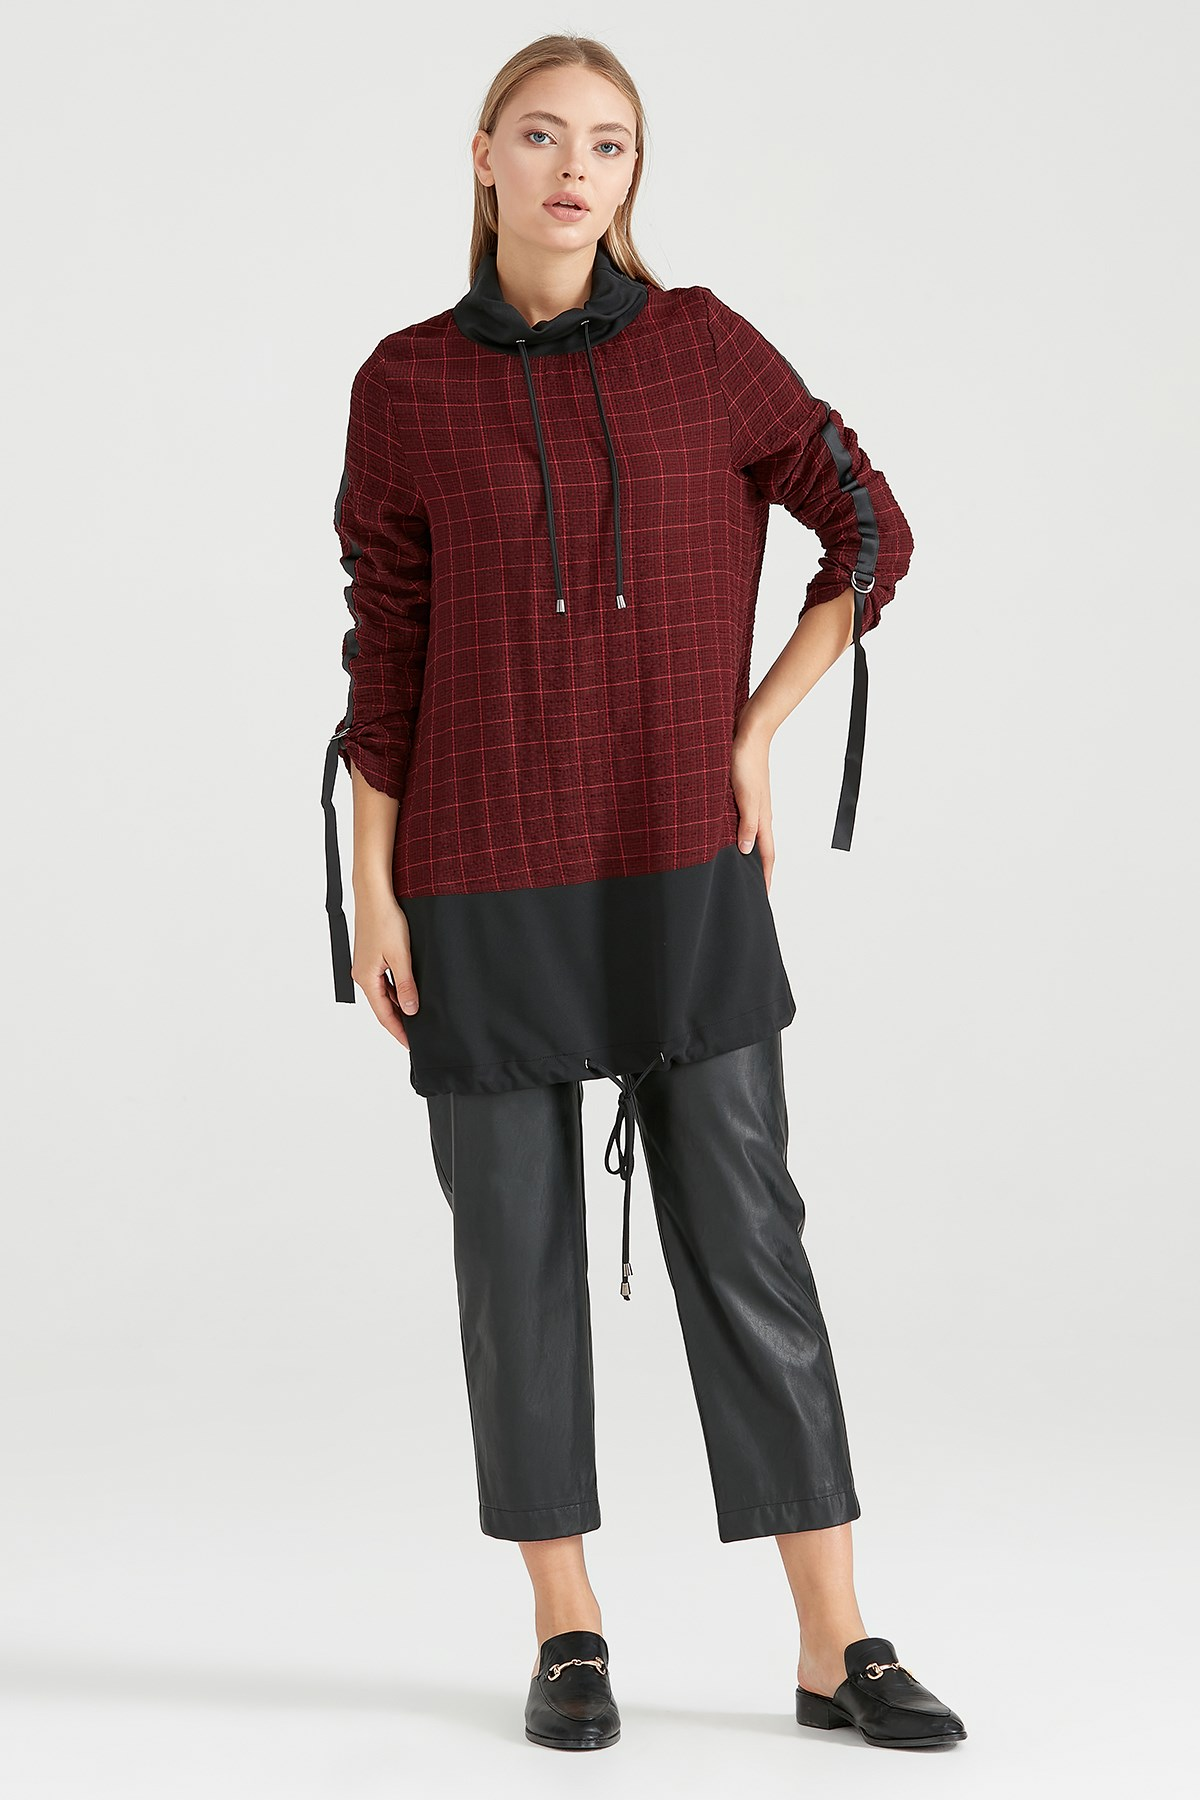 Nihan Nihan Tunik Bordo - O5061